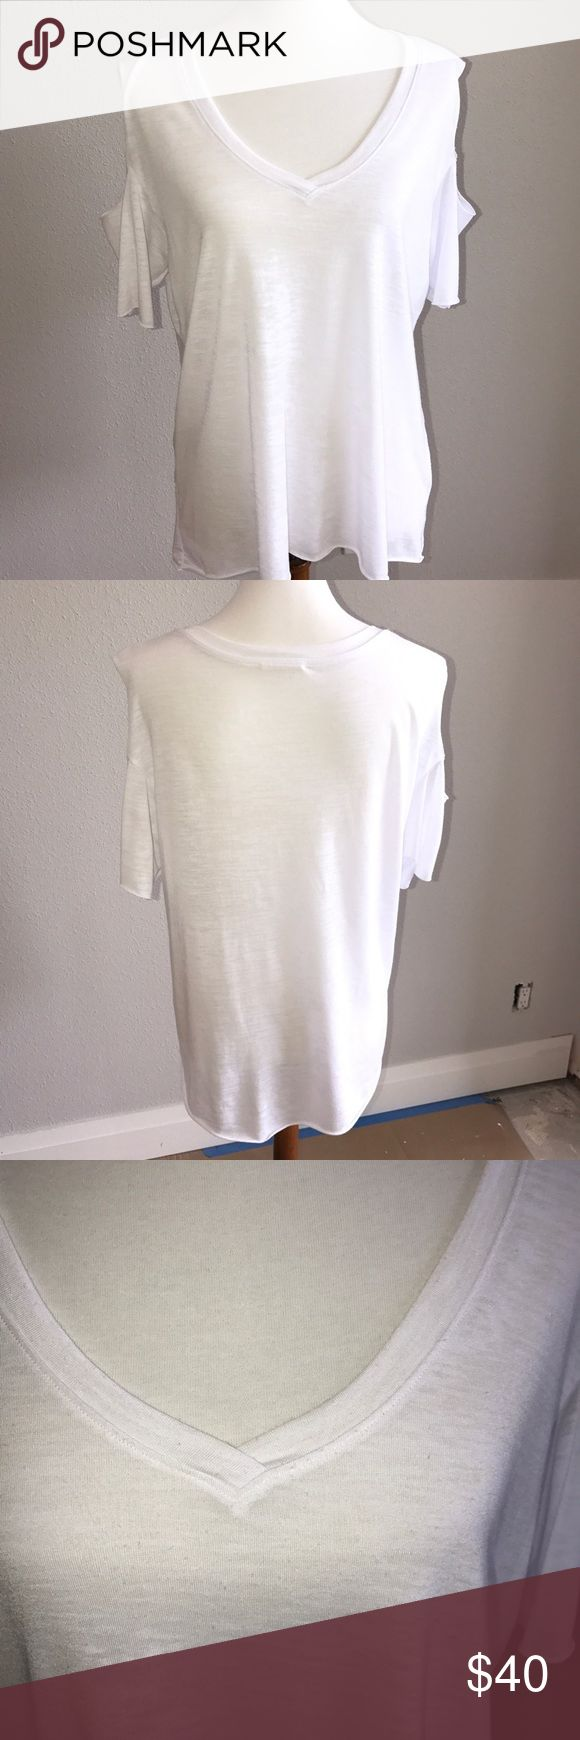 "NATION LTD. Cold Shoulder burnout top in white NATION LTD. Woman's Burnout Cold Shoulder Pullover Top. Slight burnout/slubbing of fabric. Light weight. NATION brand made in the 🇺🇸.20"" Armpit to Armpit. Length 24"". In very good condition. White Nation LTD Tops Tees - Short Sleeve"